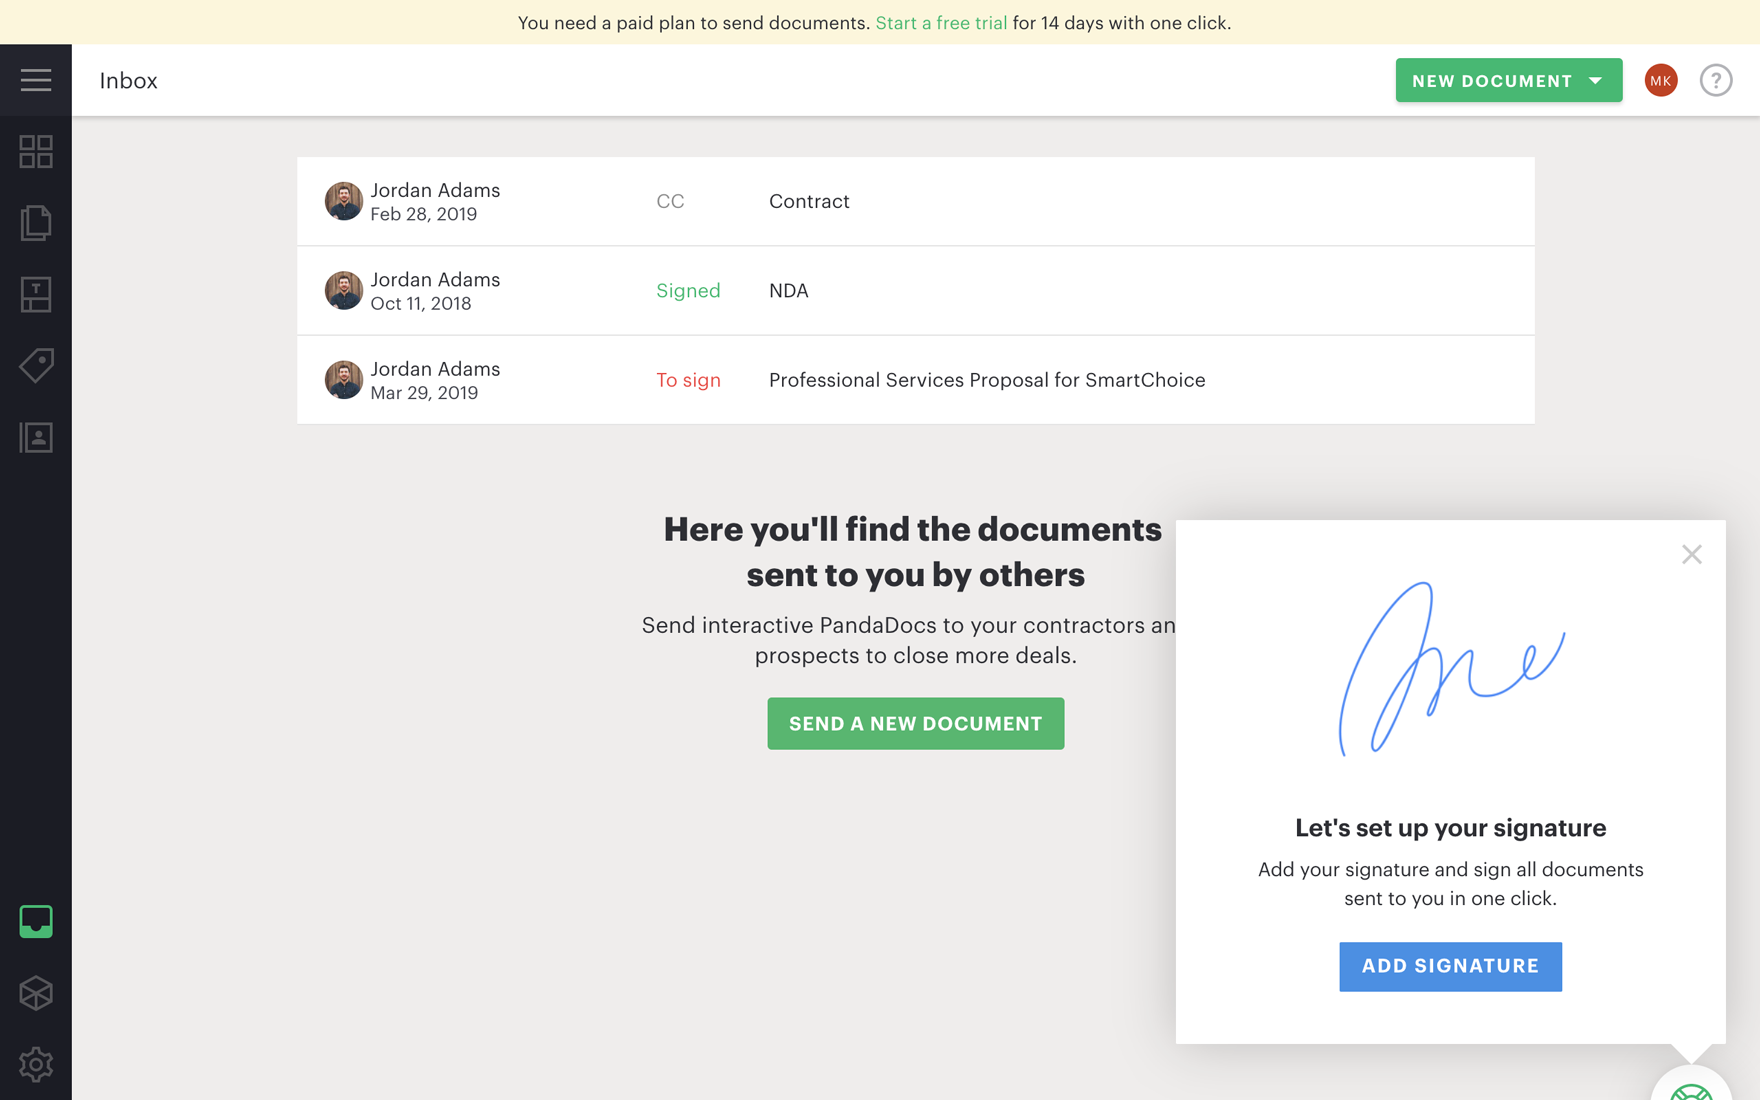 Recipients can review and sign all deal documents in one place: their inbox